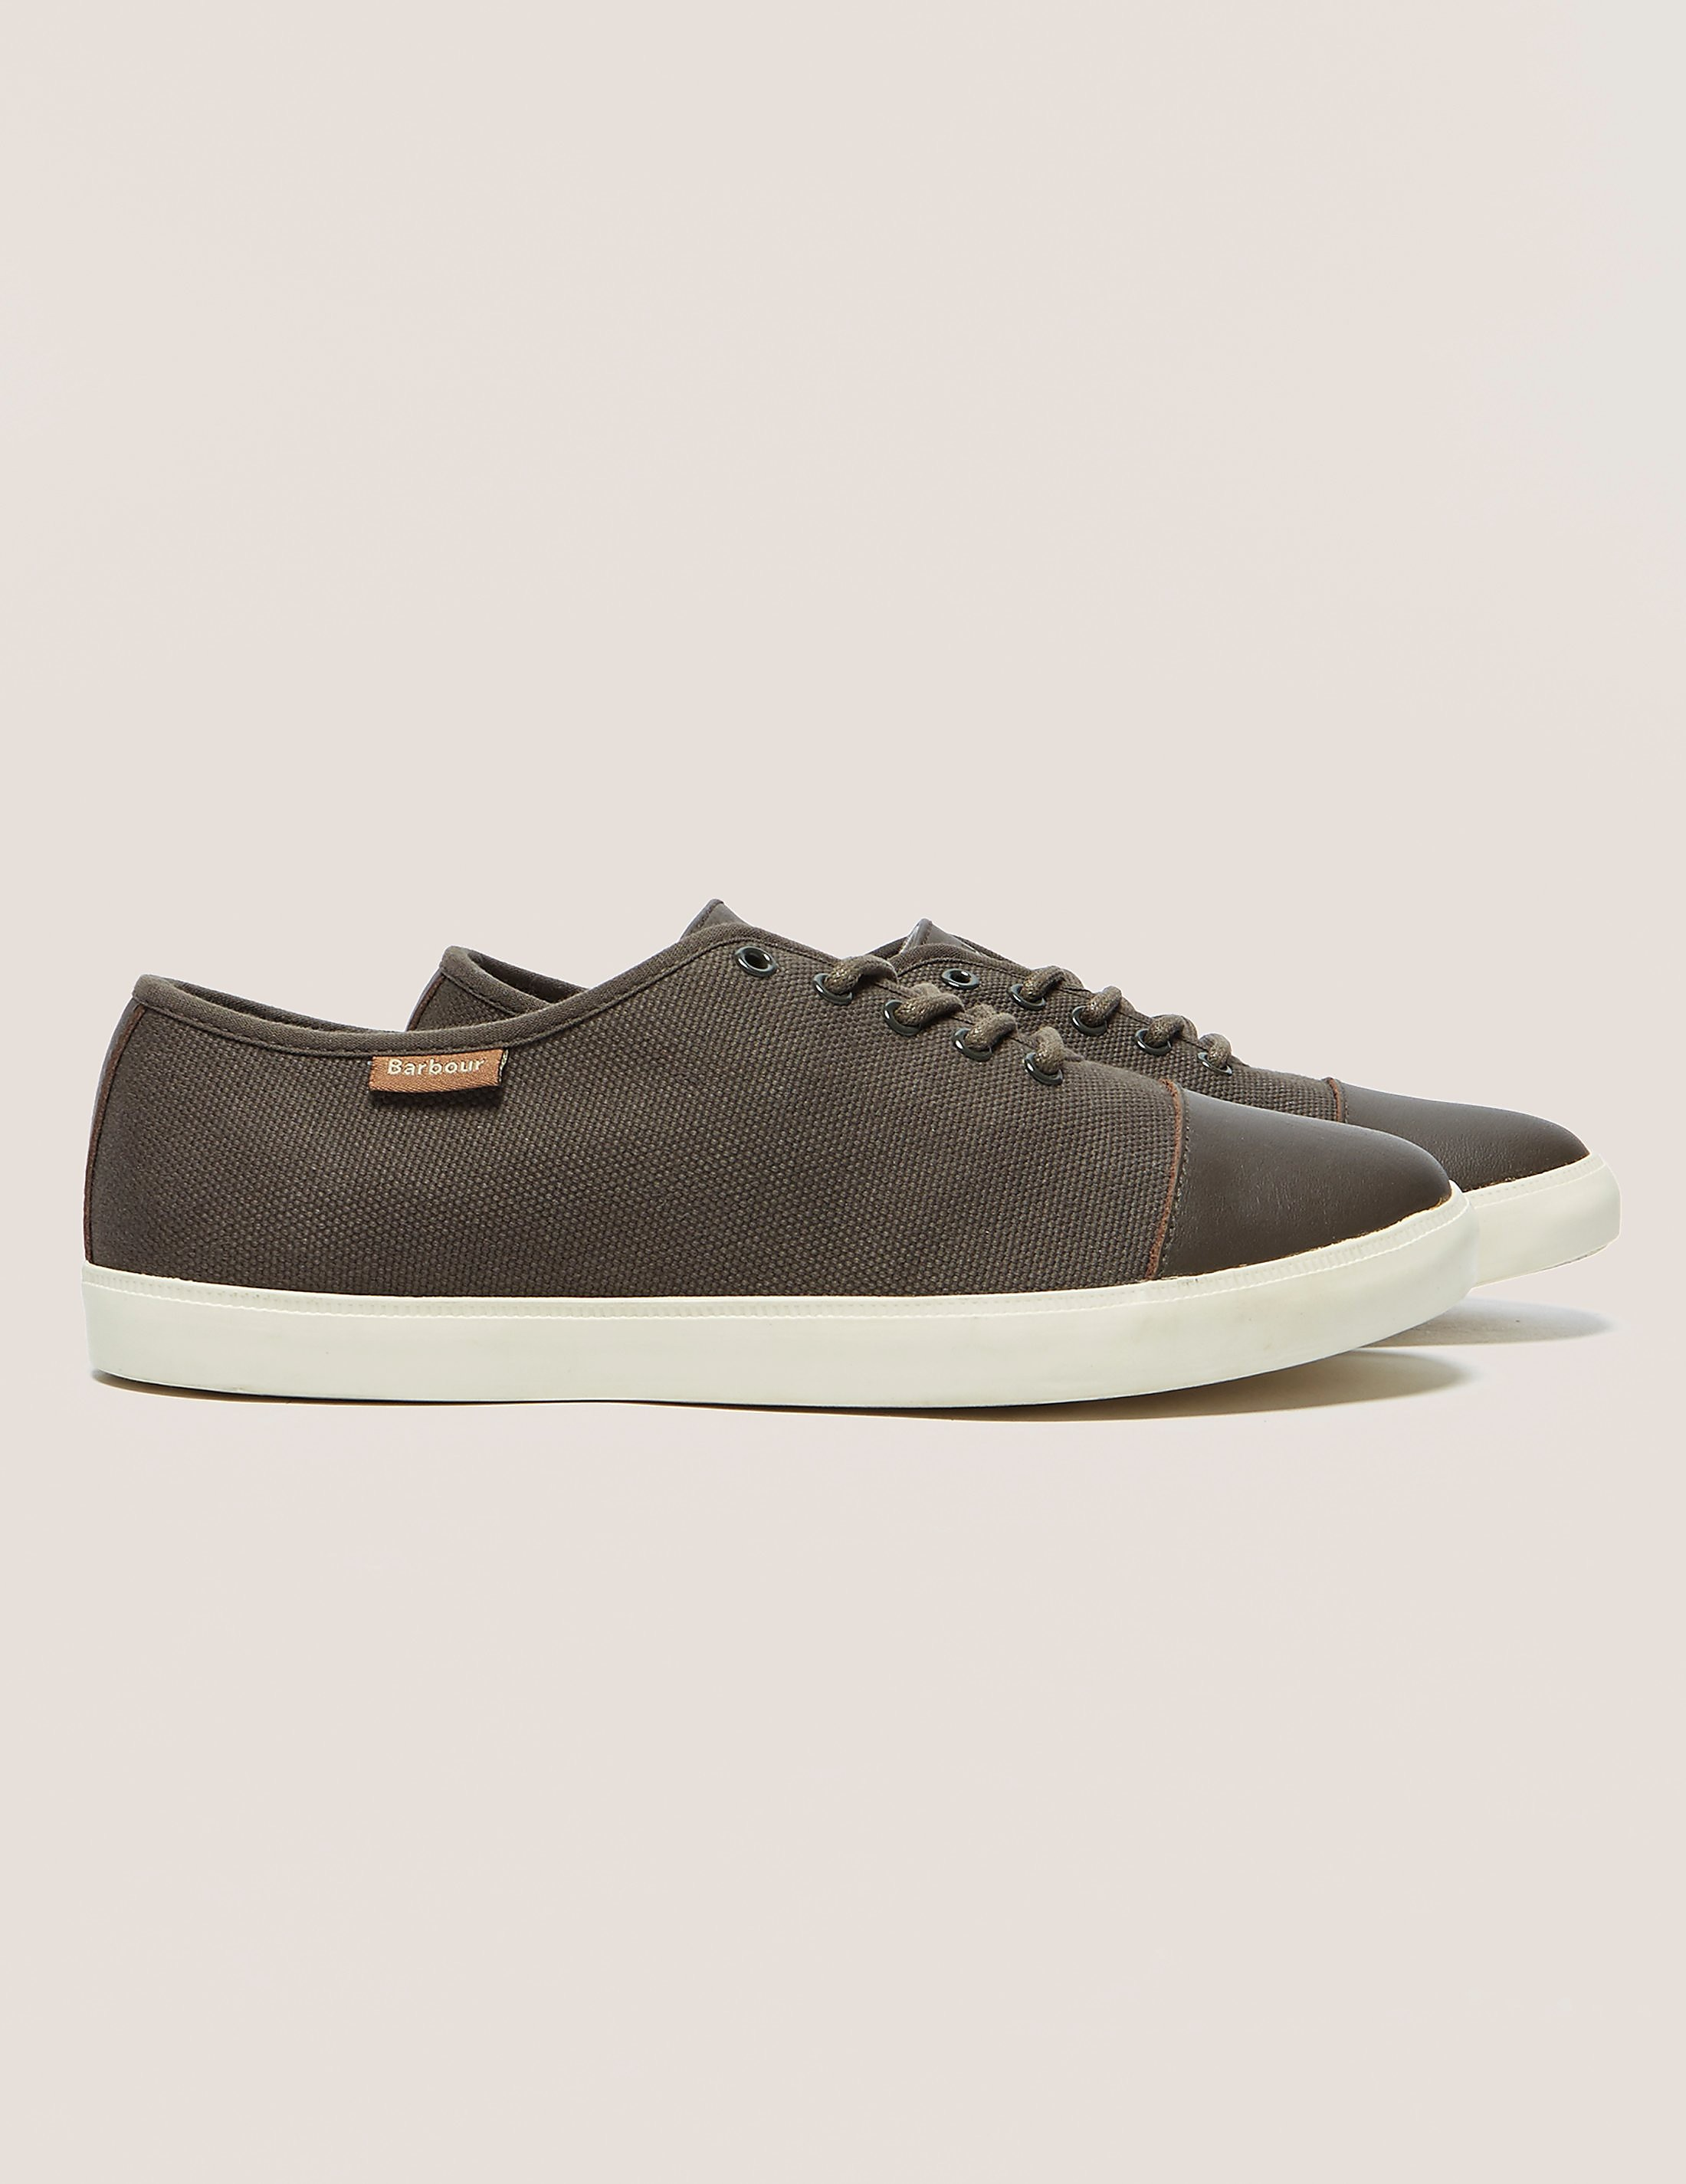 Barbour Wade Sneakers